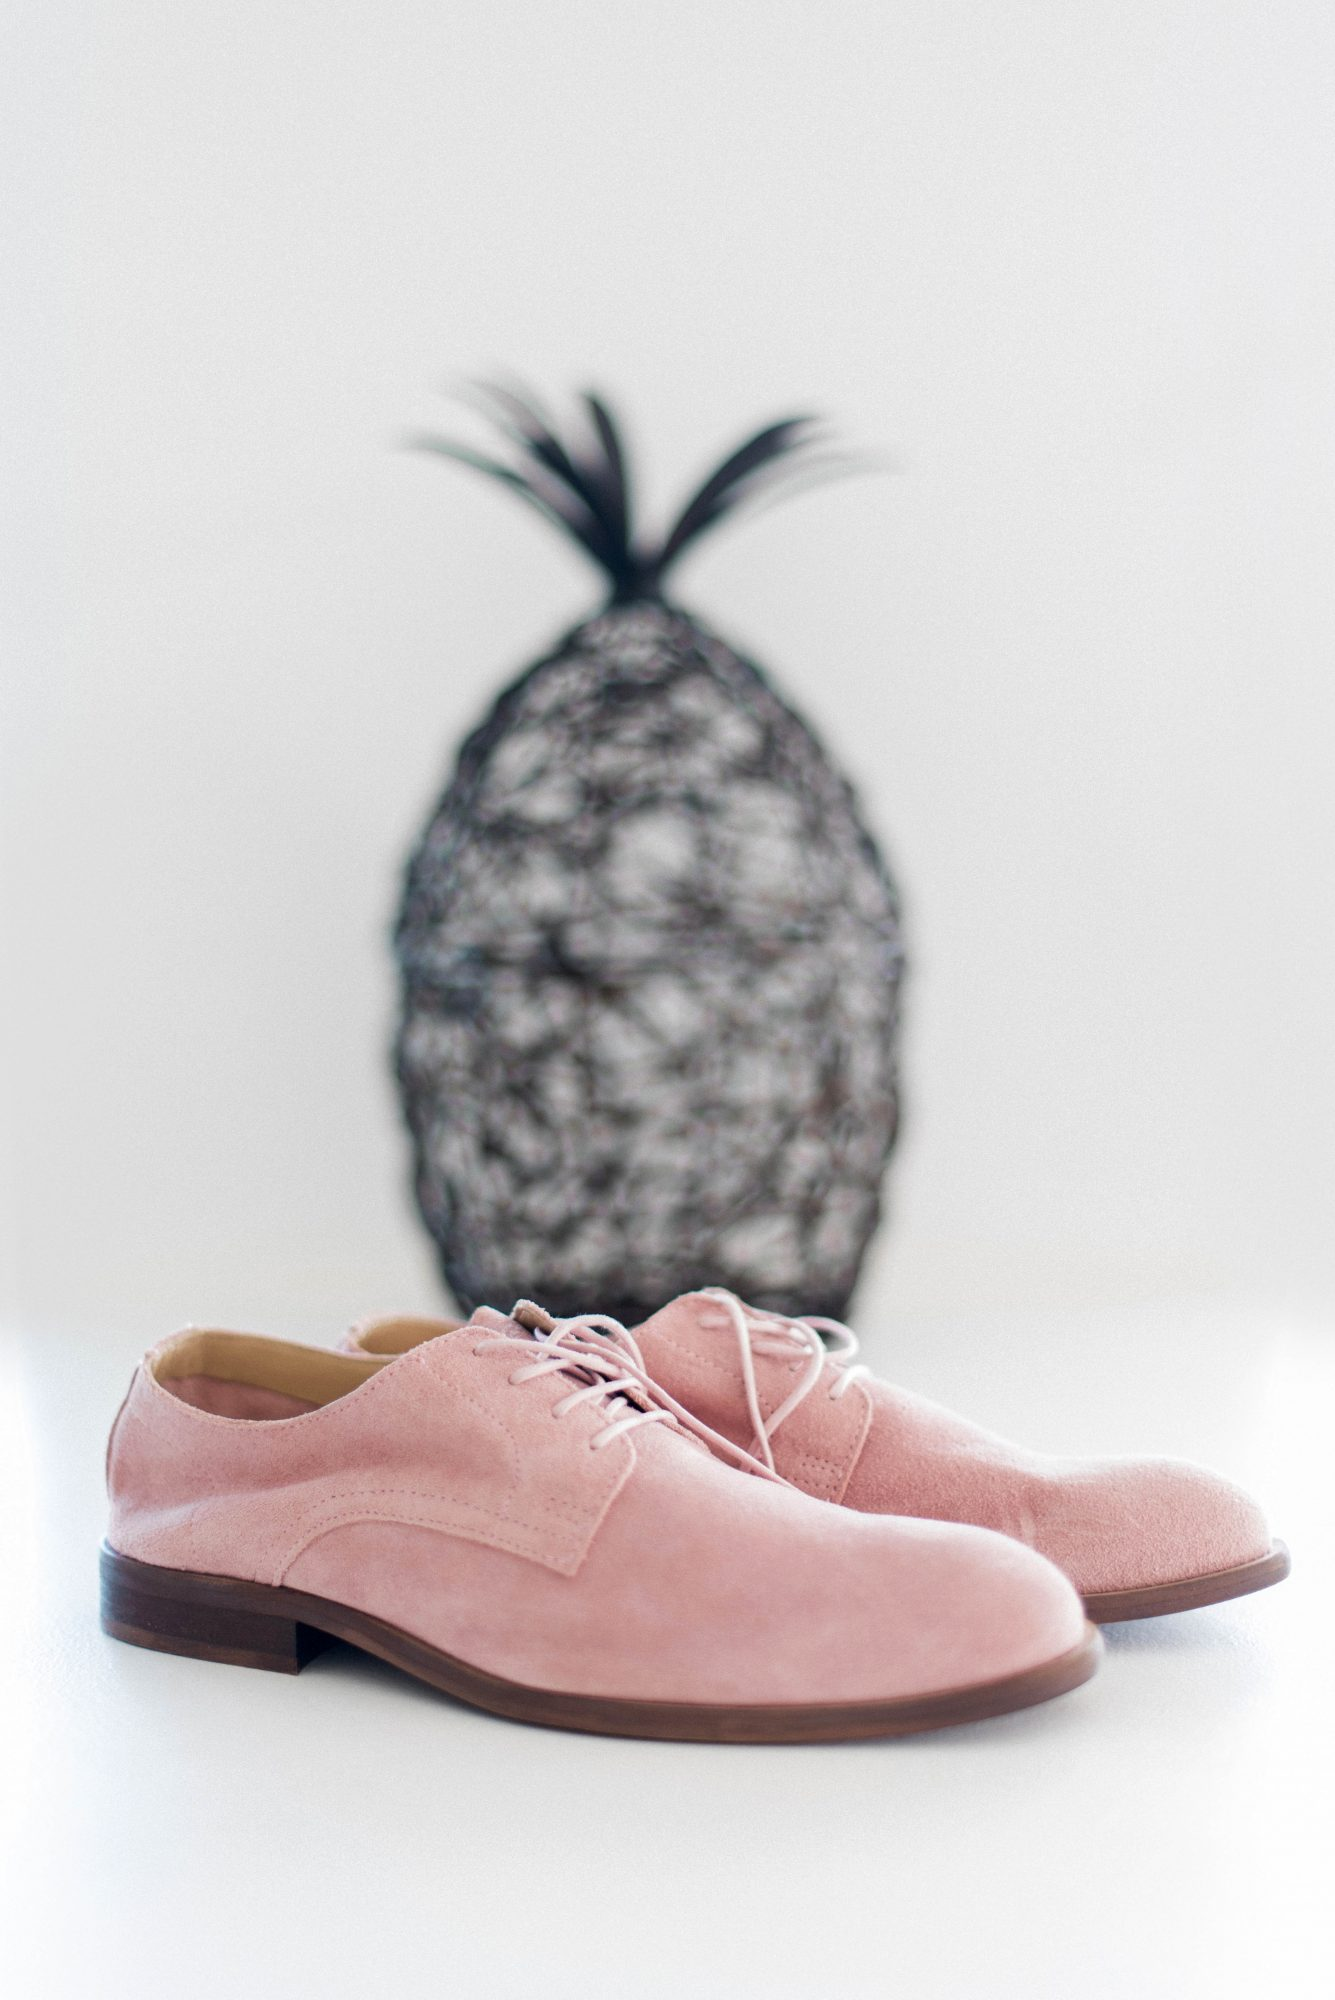 cool groom accessories pink blush shoes